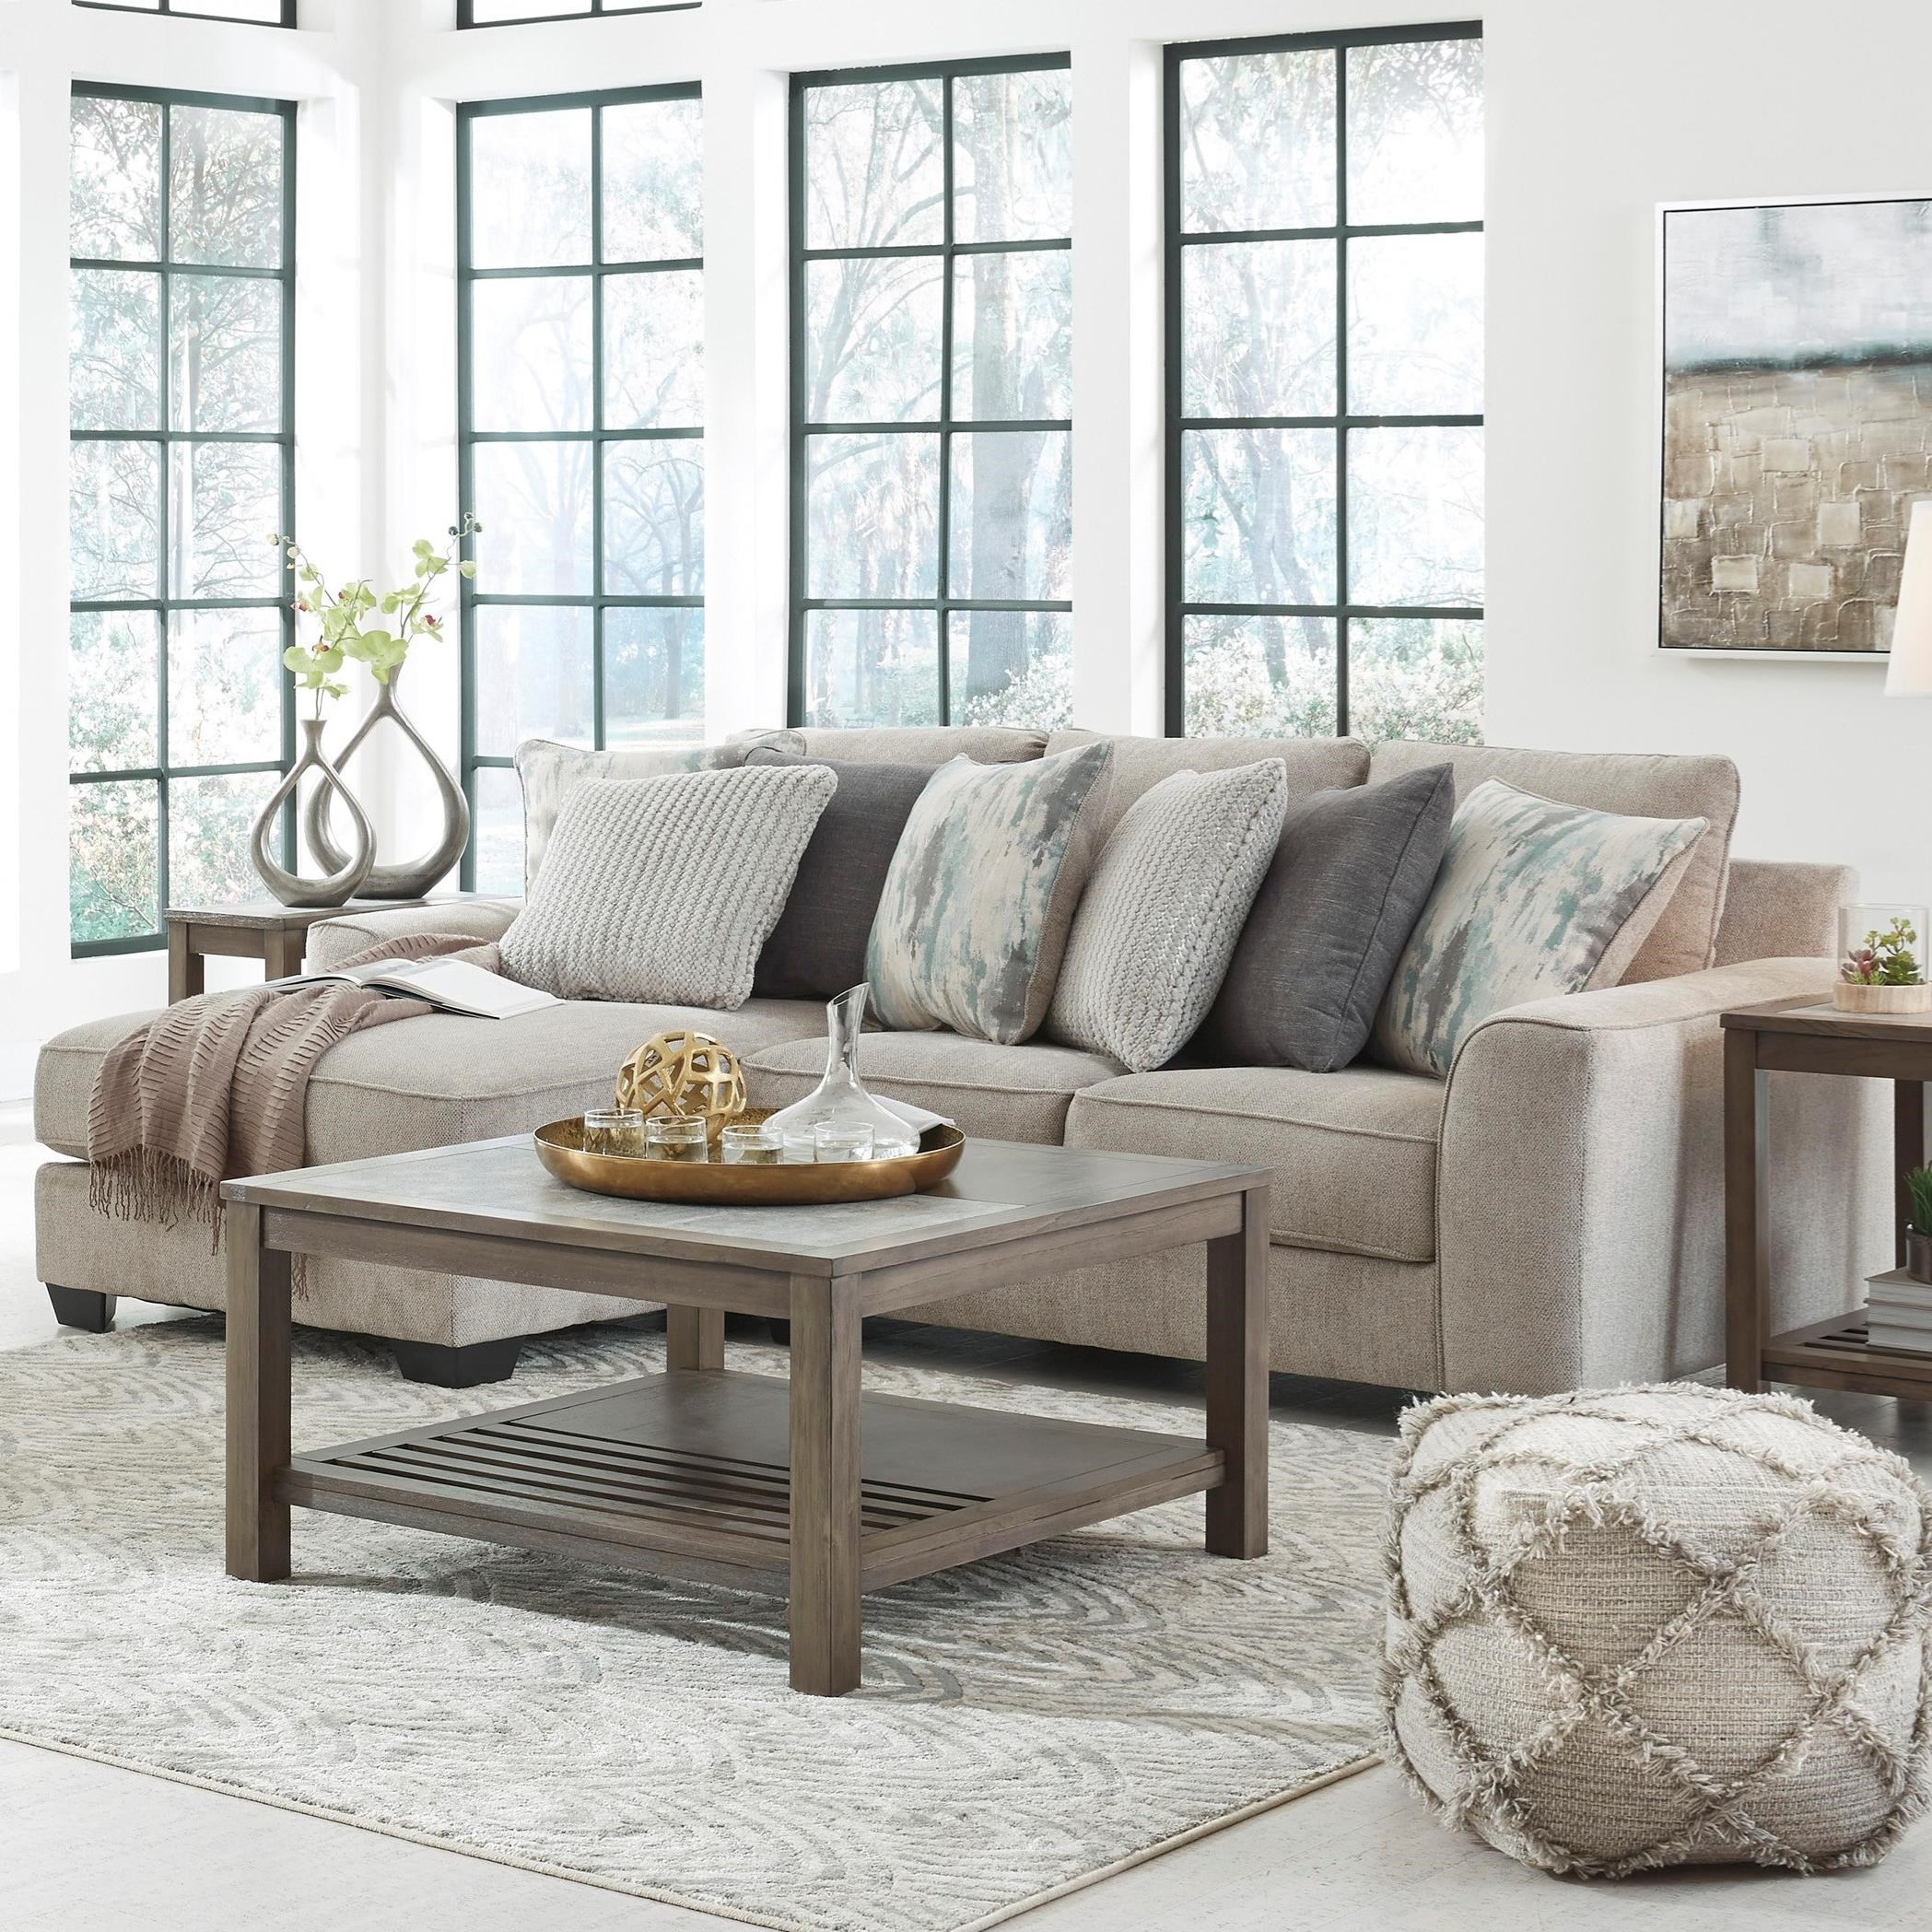 Ardsley 2-Piece Sectional with Left Chaise by JB King at EFO Furniture Outlet